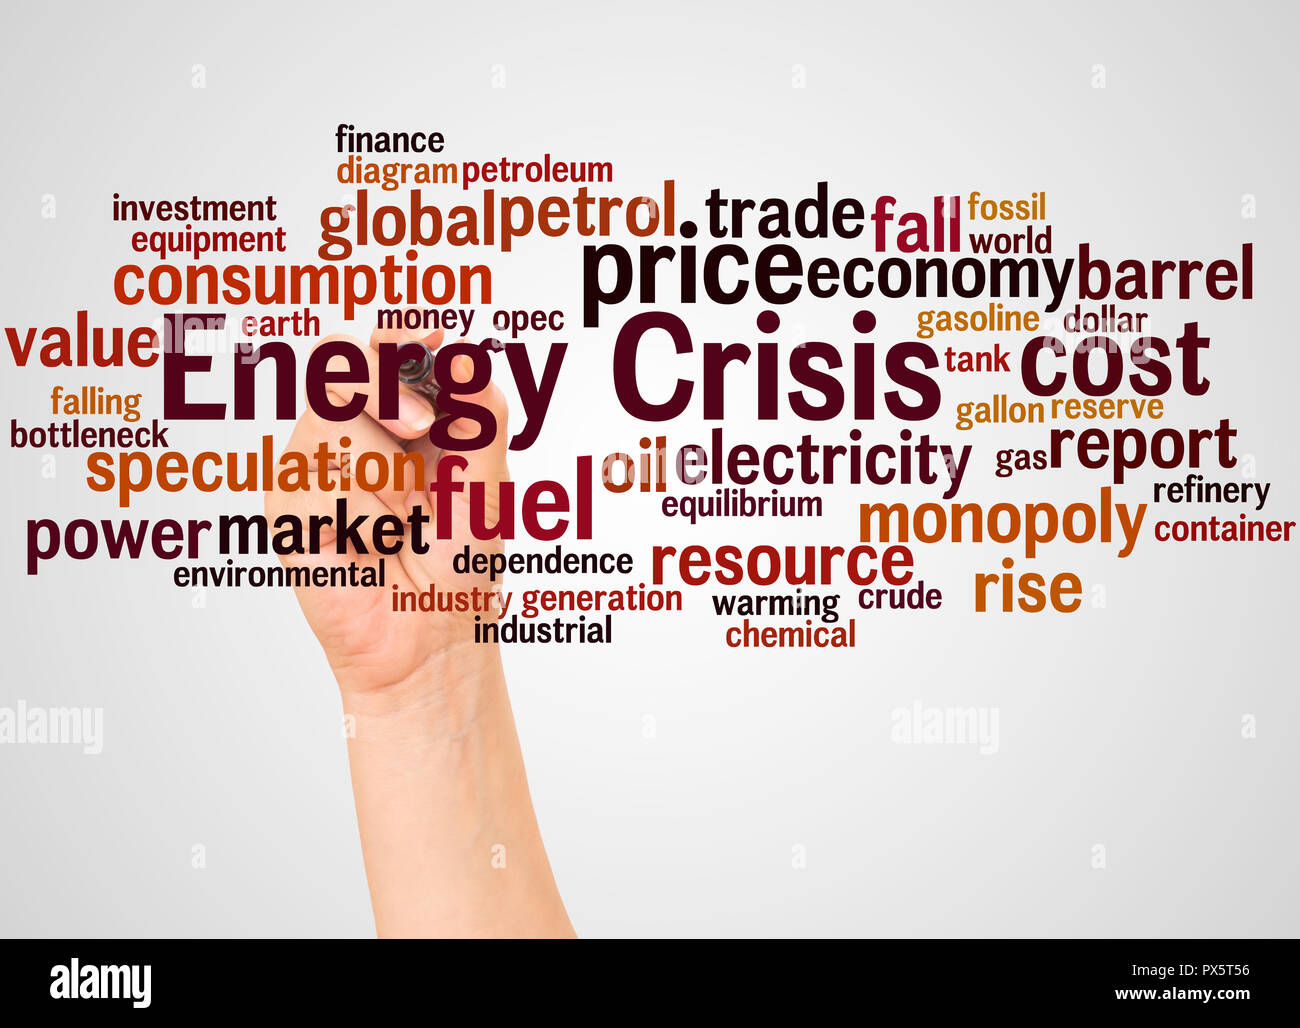 Energy crisis word cloud and hand with marker concept on white background. - Stock Image